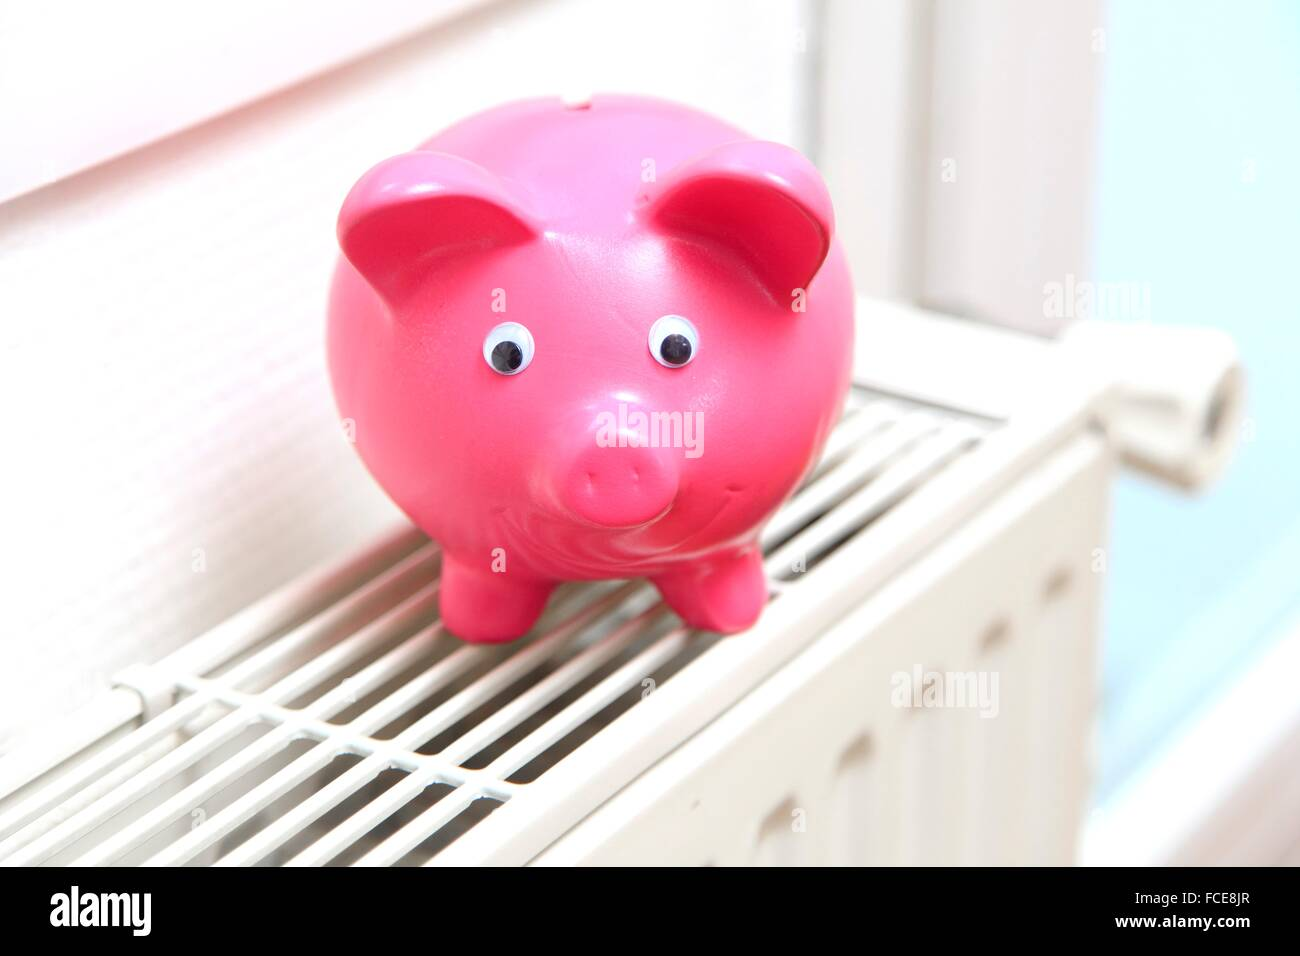 Piggybank on a radiator - Stock Image